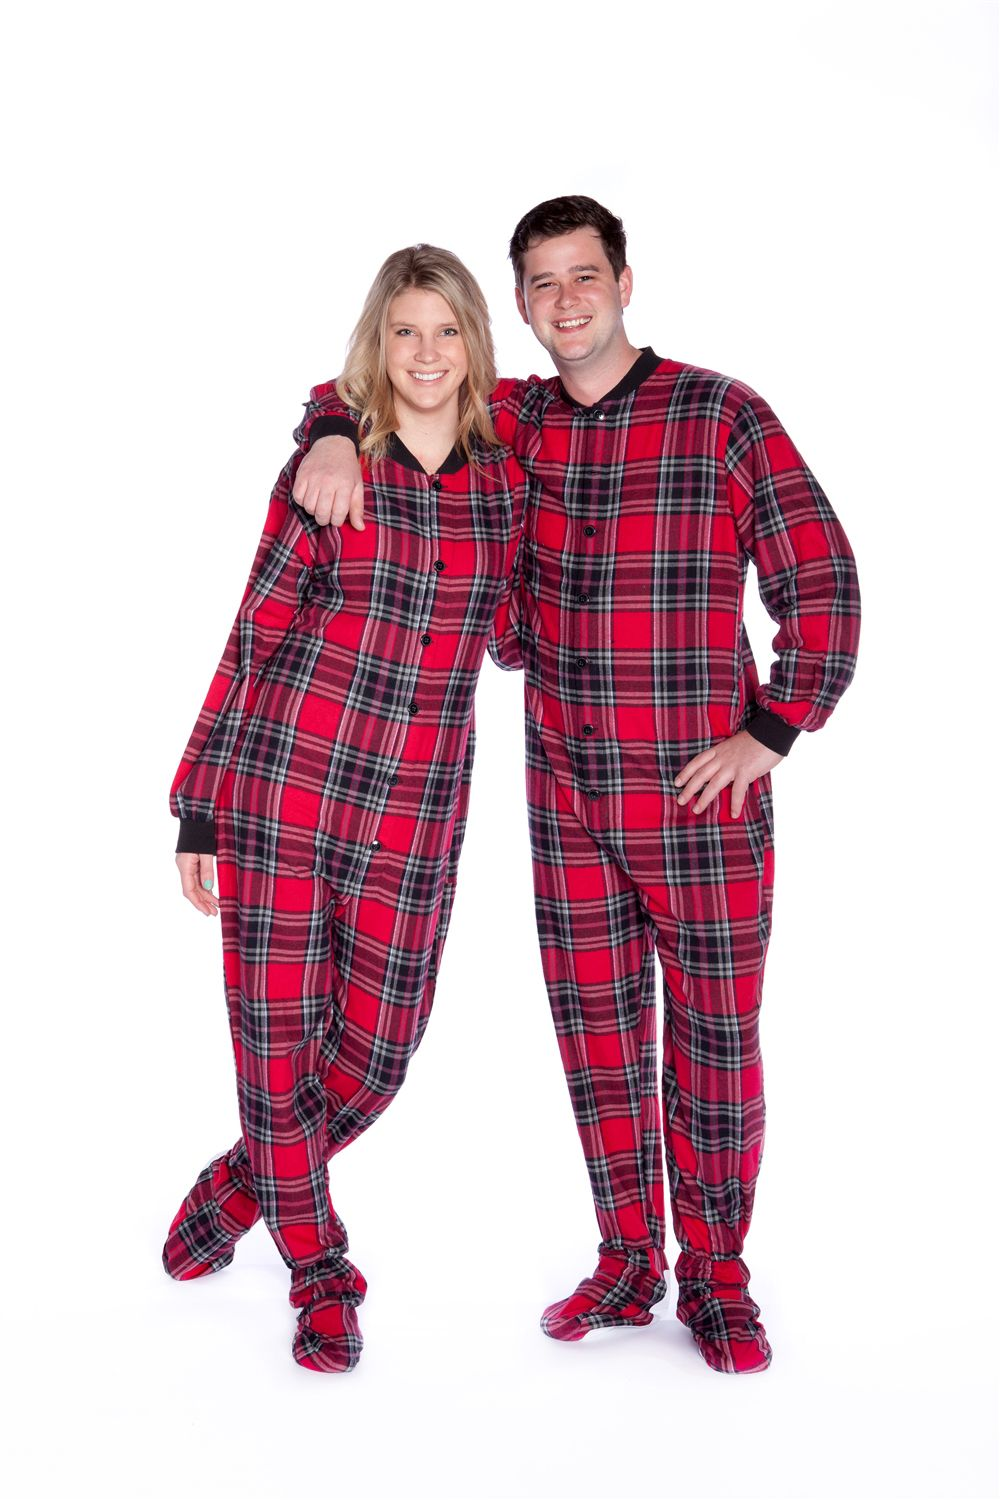 Flannel Adult Footed Pajamas in Red and Black Plaid Onesie